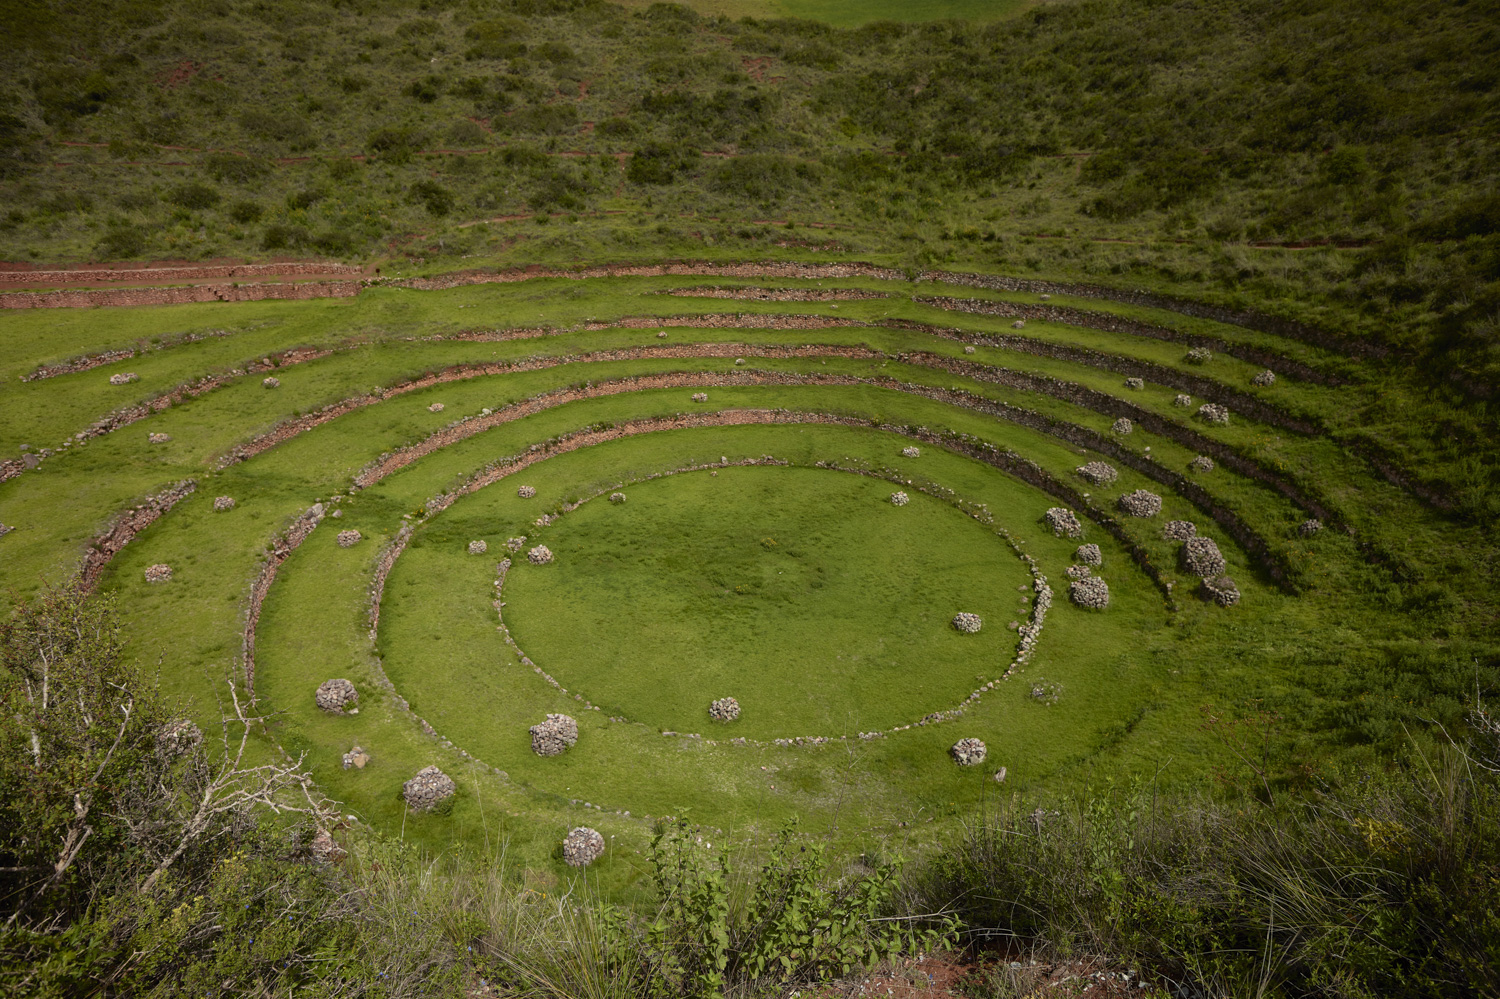 Terraces - Maras, Sacred Valley, February 2016